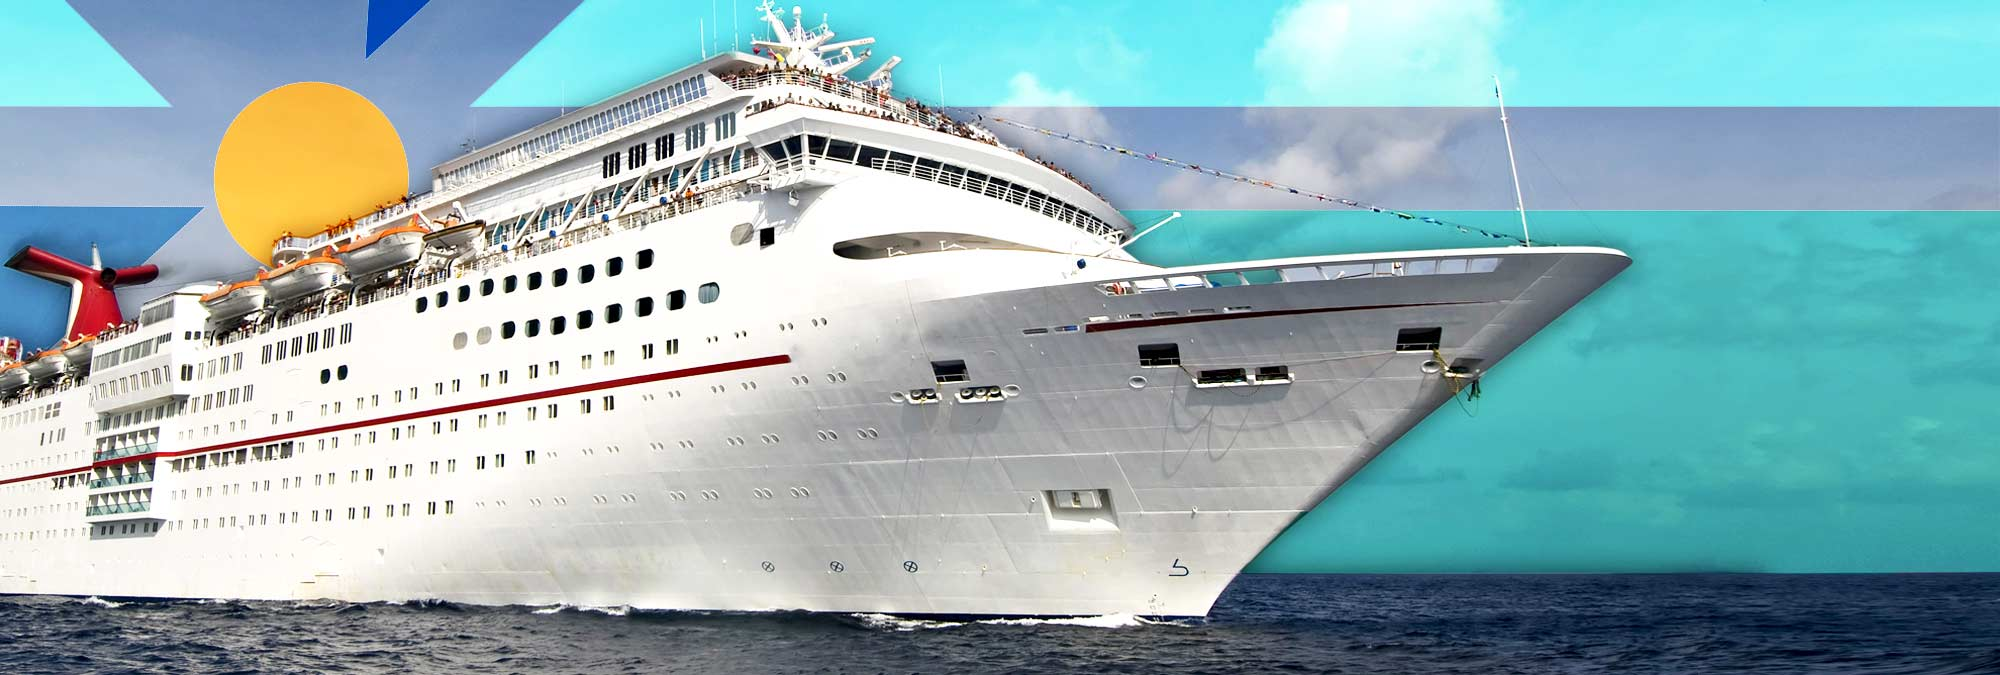 Discover adventure close to home with a cruise from Jacksonville Florida